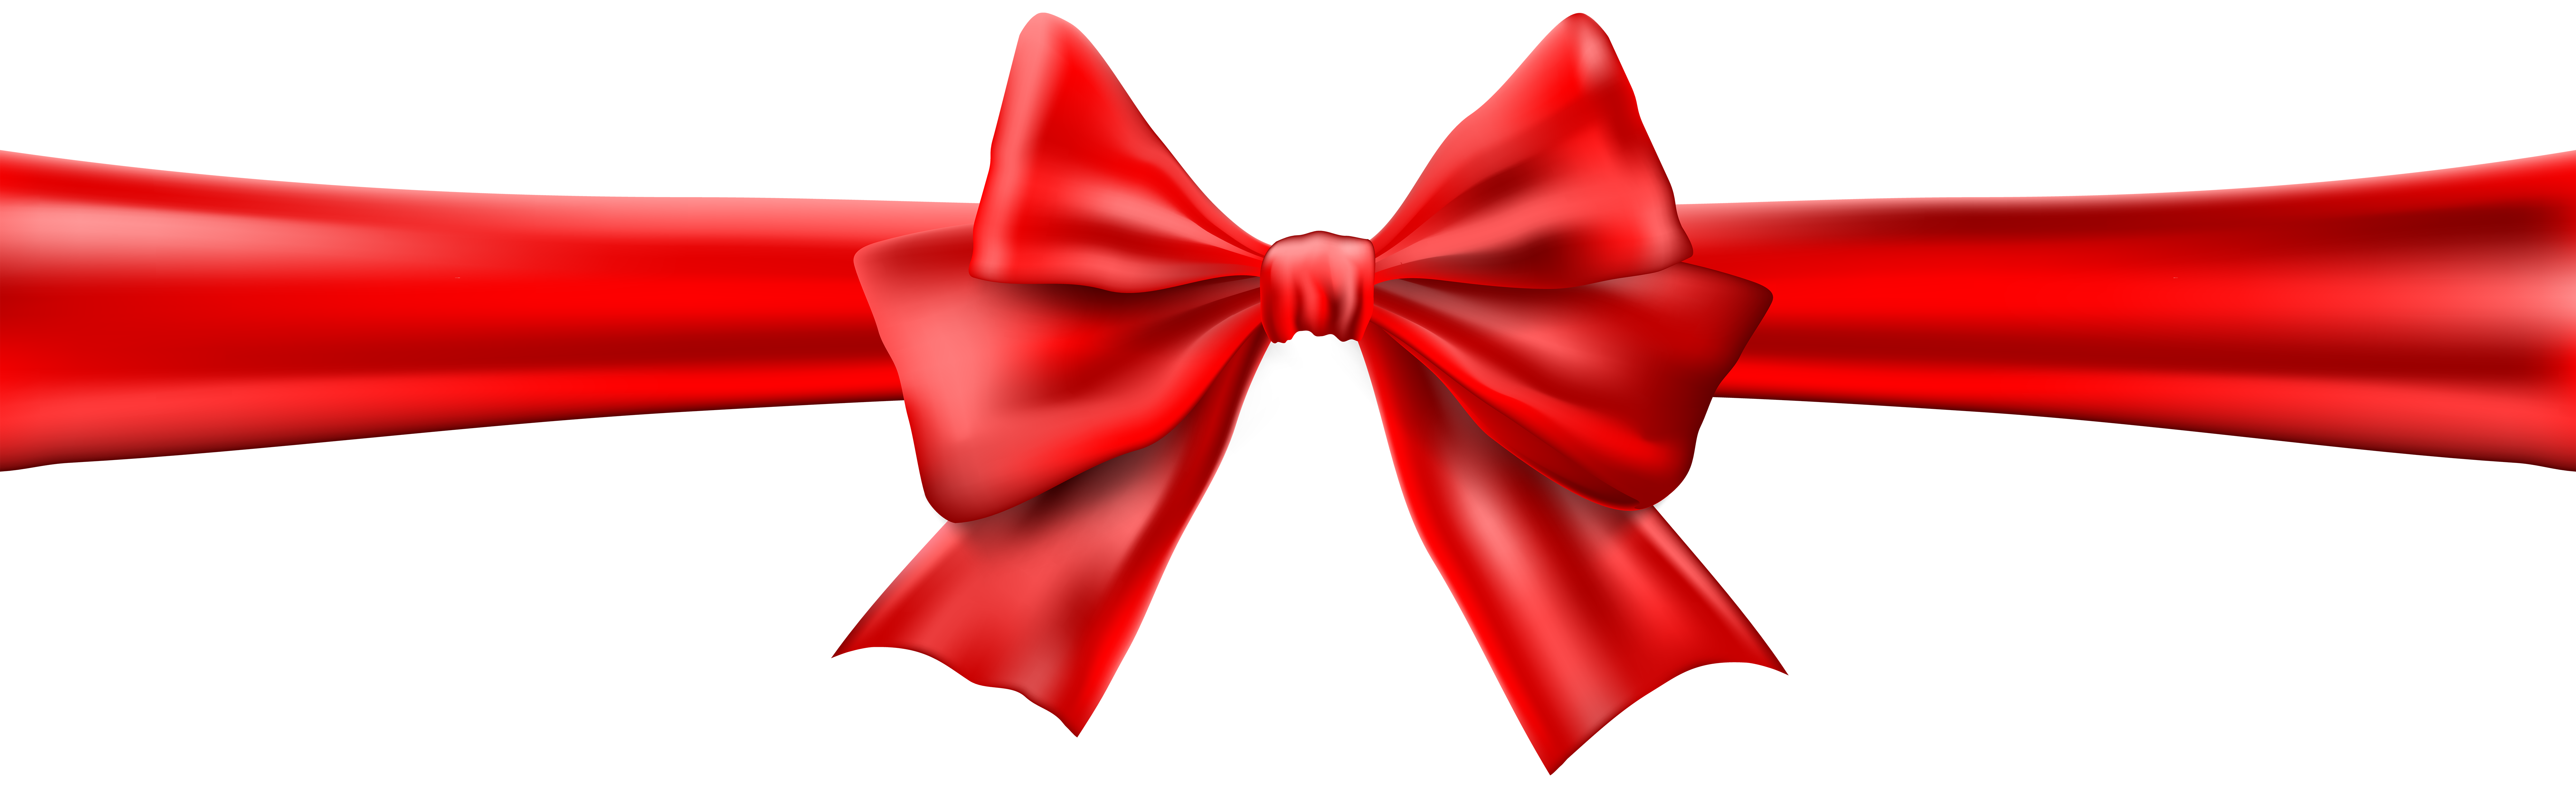 Red Bow with Ribbon Clip Art Image.